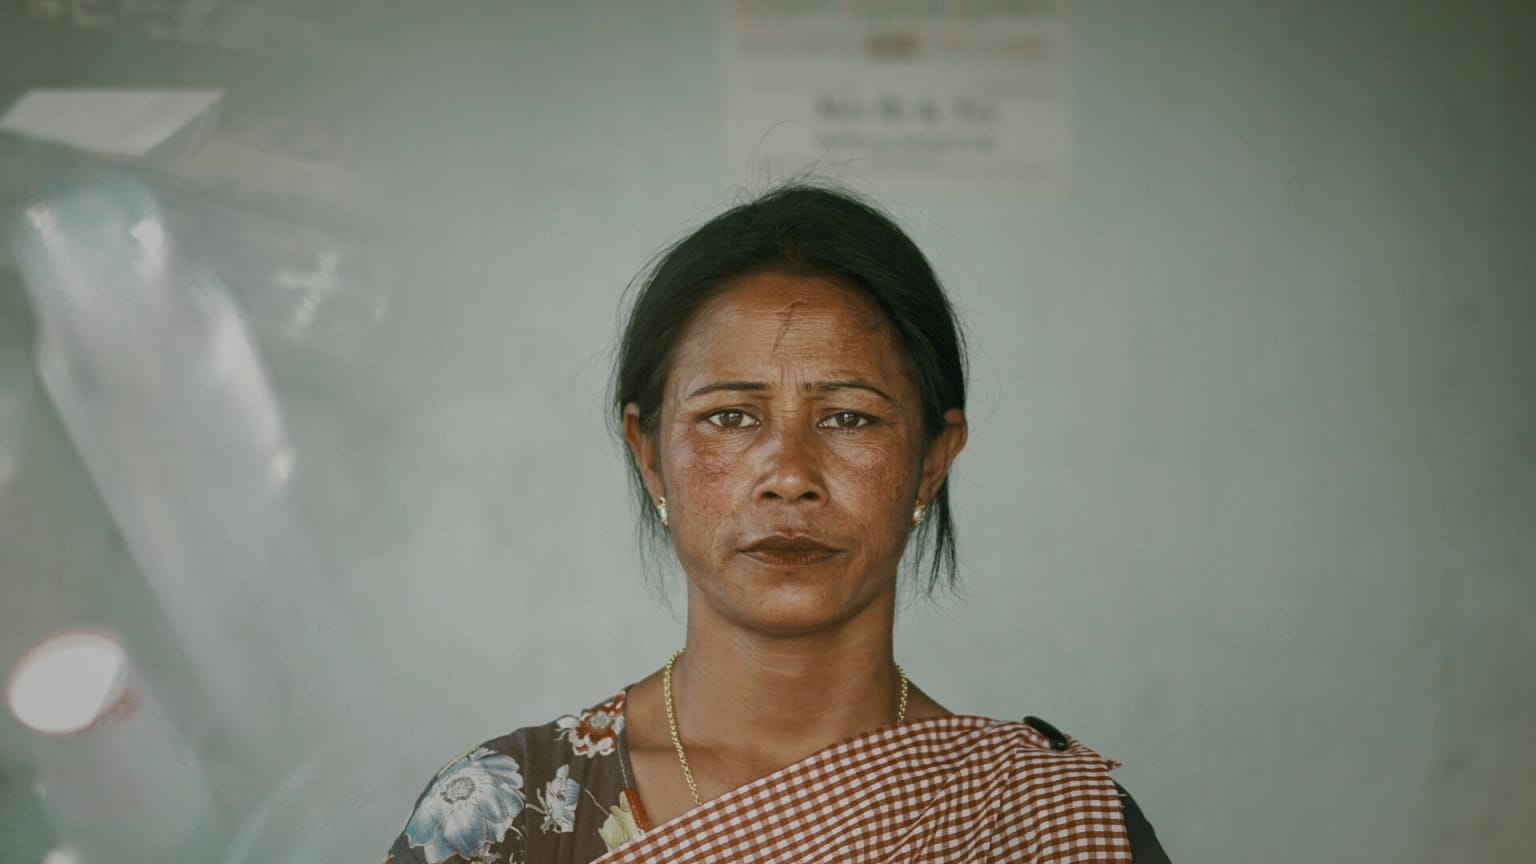 Portraits from South Asia